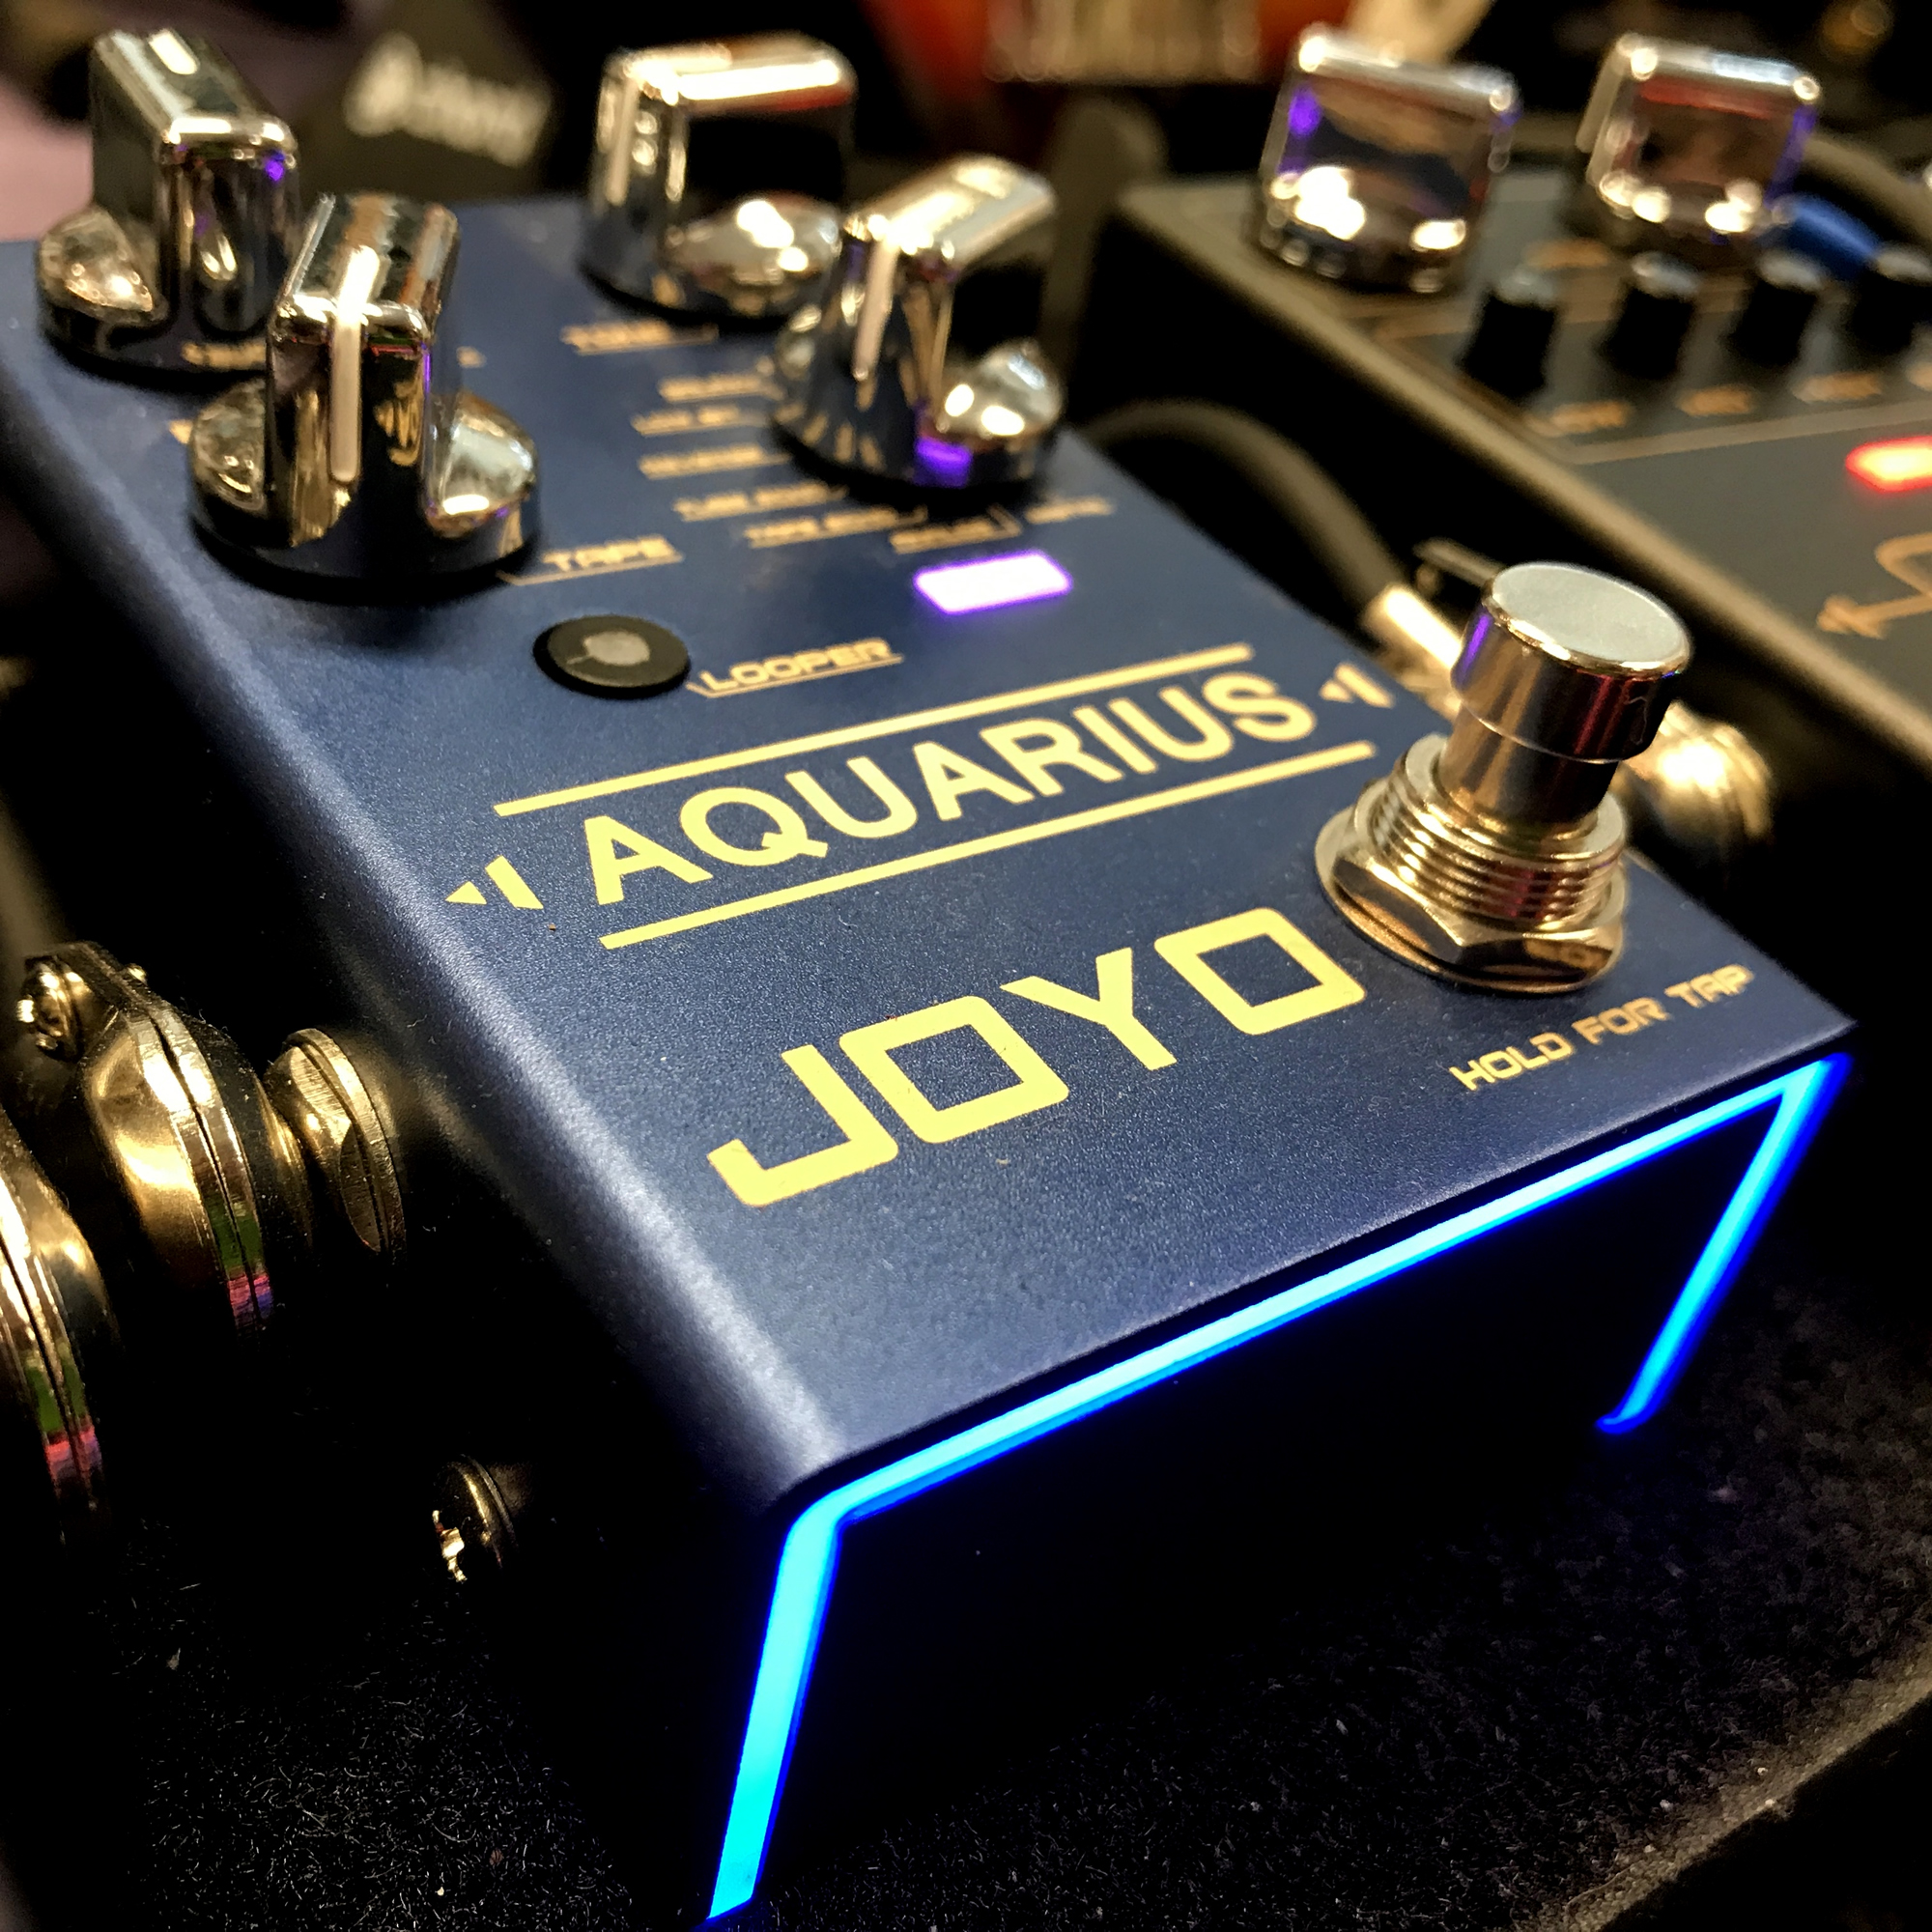 JOYO Aquarius Multi Delay Pedal